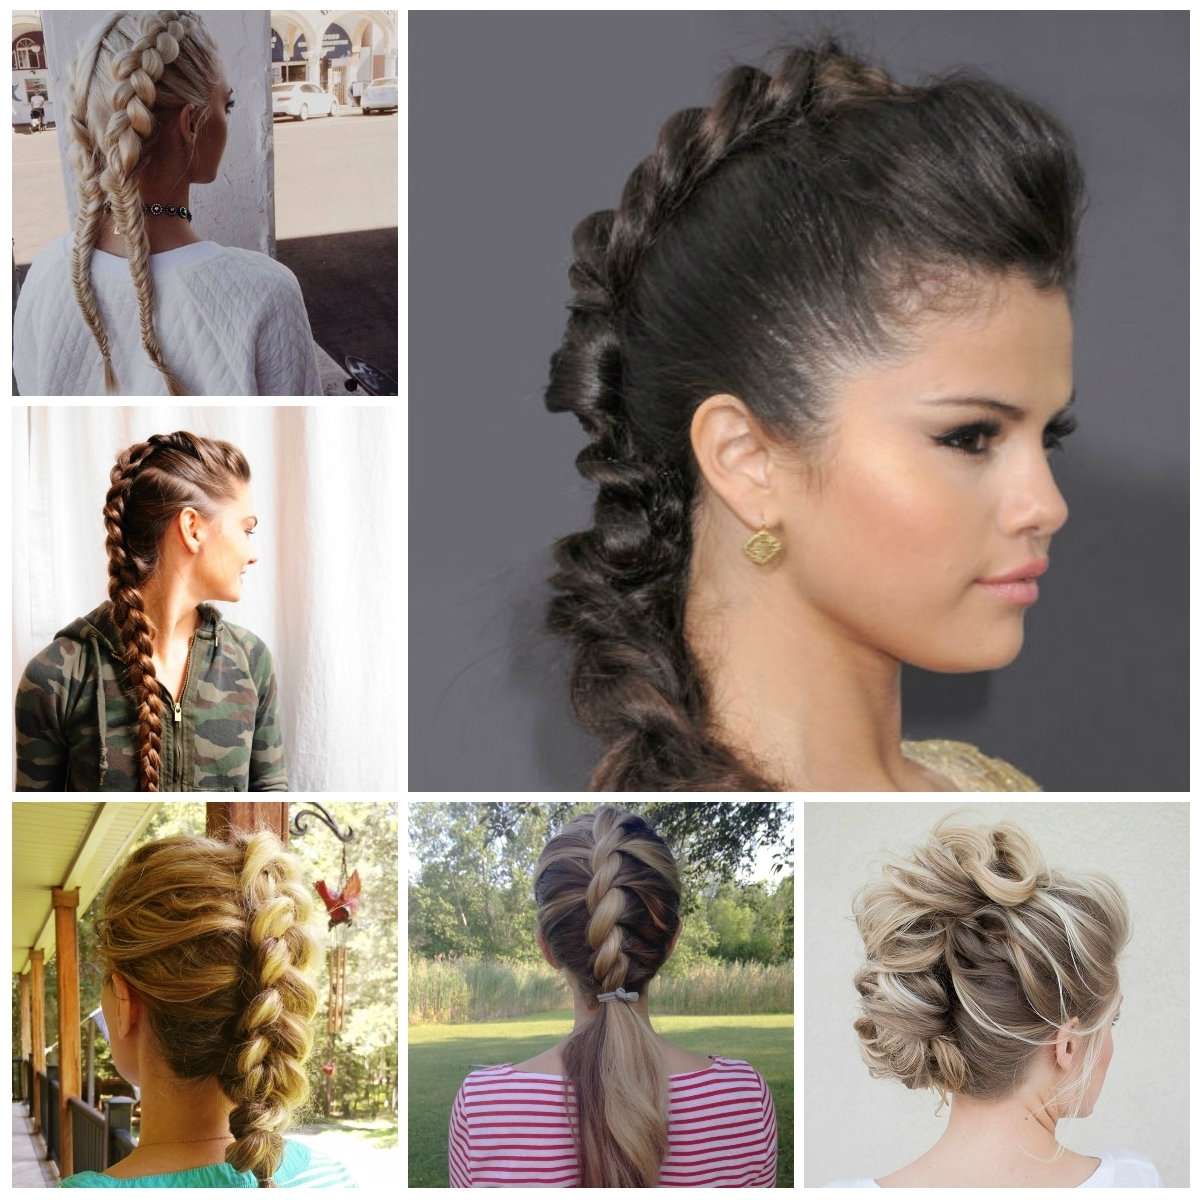 Wispy Updo Hairstyles – Hairstylesunixcode Within Wispy Updo Hairstyles (View 15 of 15)